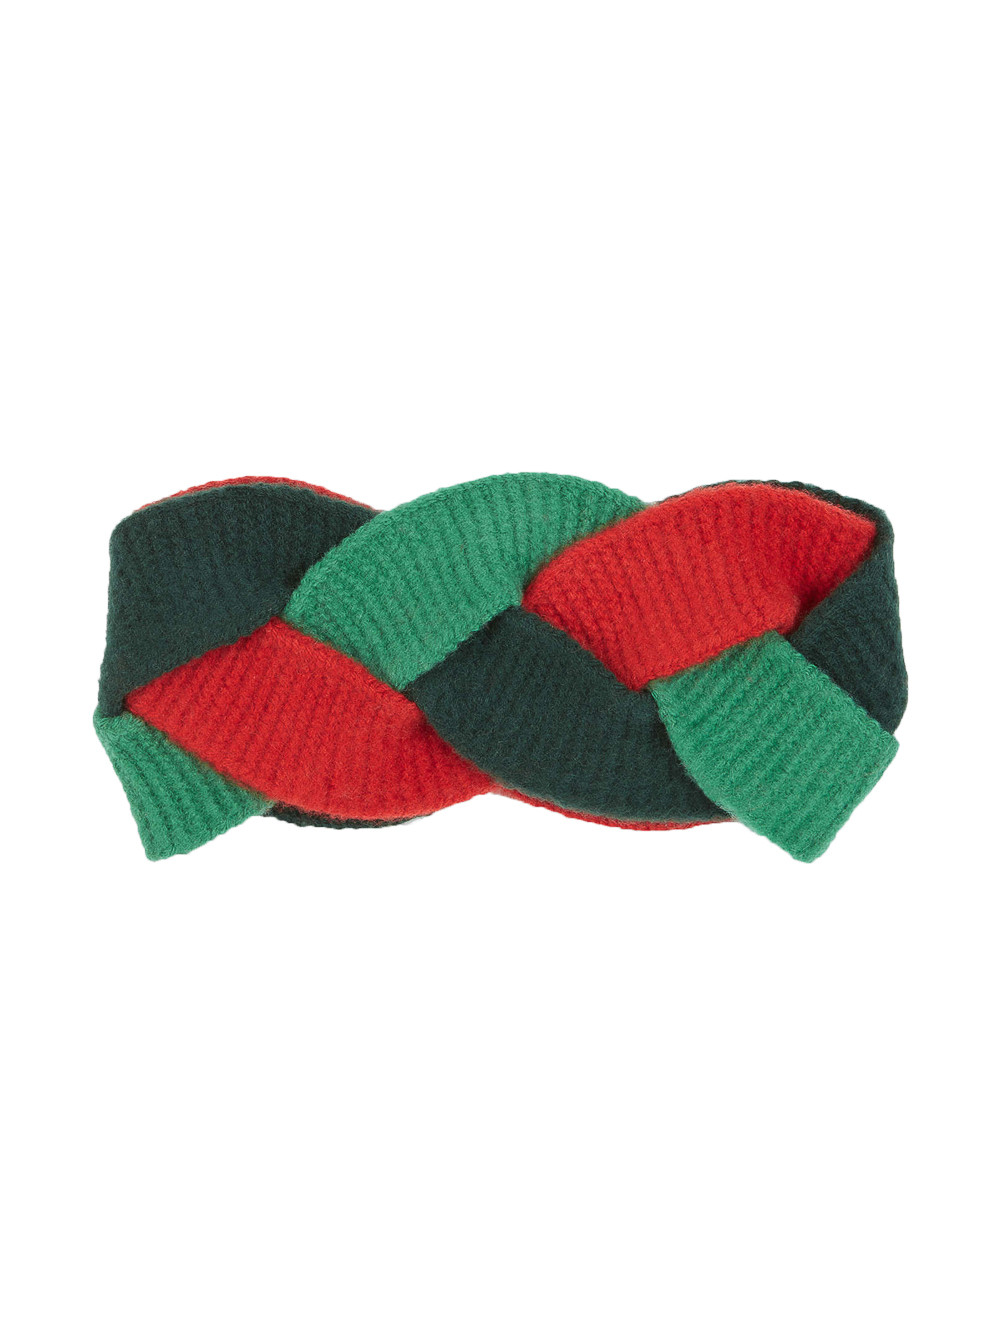 2a9932ab98b GUCCI Multicolor Braided Wool Blend Headband